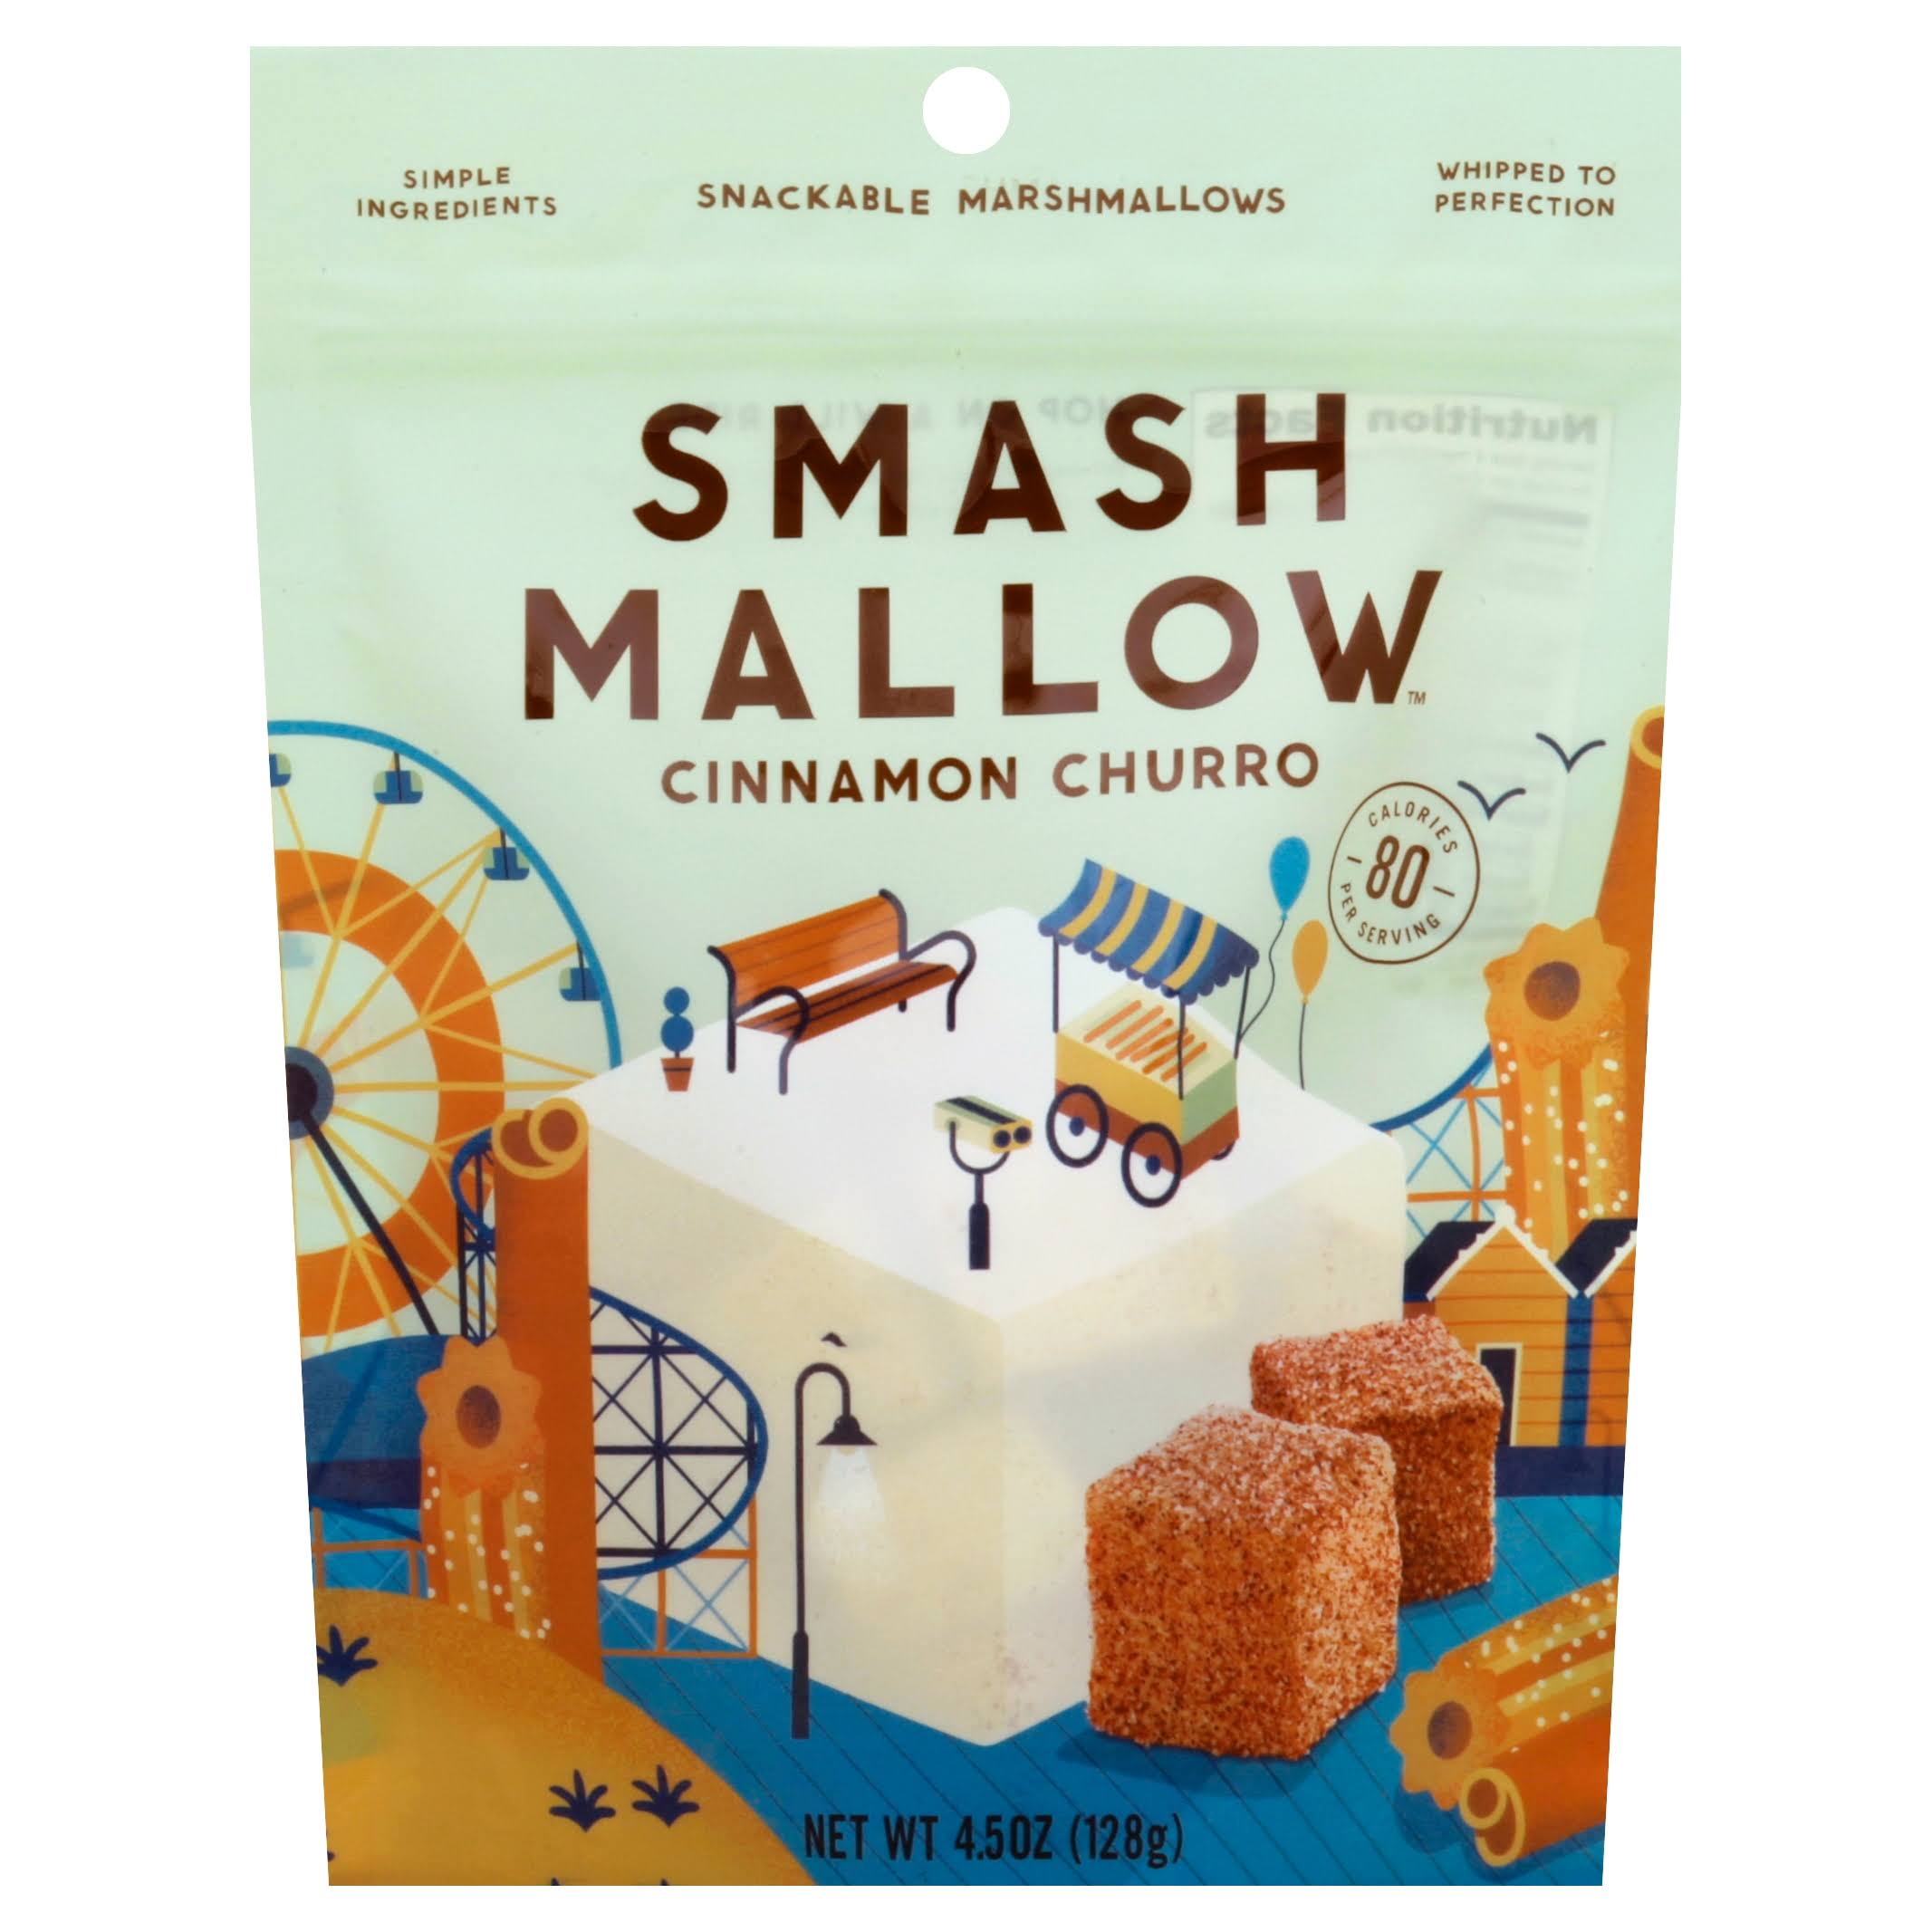 Smash Mallow Snackable Marshmallows - 4.5oz, Pack of 4, Cinnamon Churro